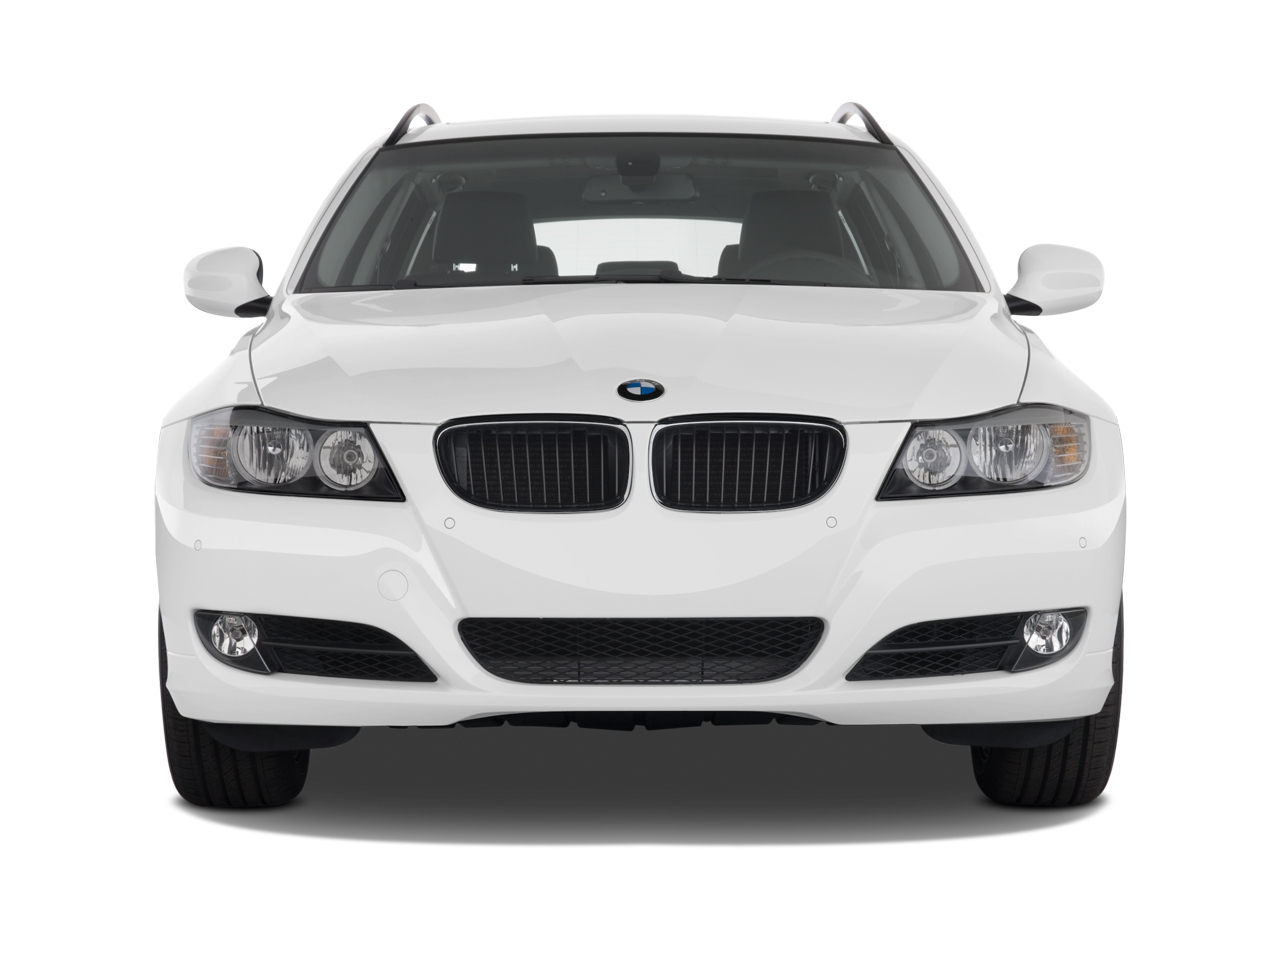 2011 Bmw 328i And 335i Xdrive Models Recalled For Loose